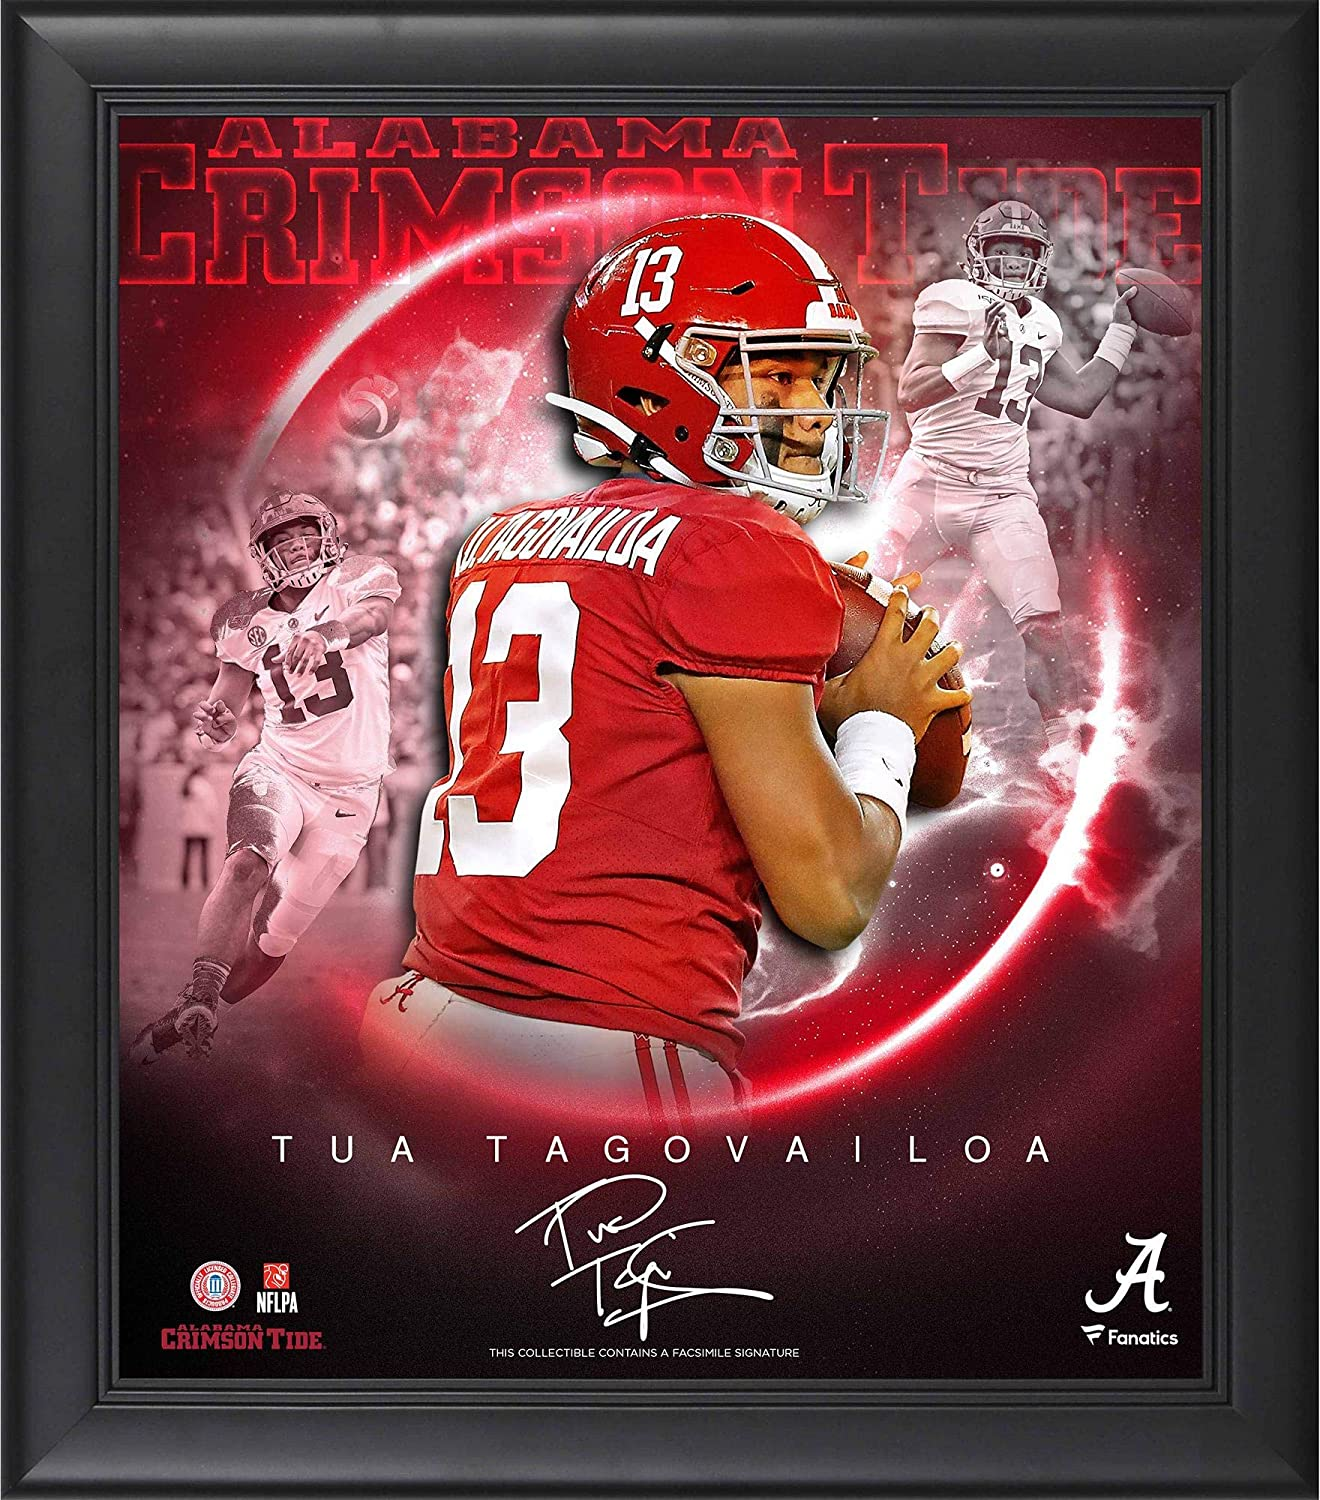 Tua Discount is also underway Tagovailoa Bombing new work Alabama Crimson Tide Framed of th Stars 15